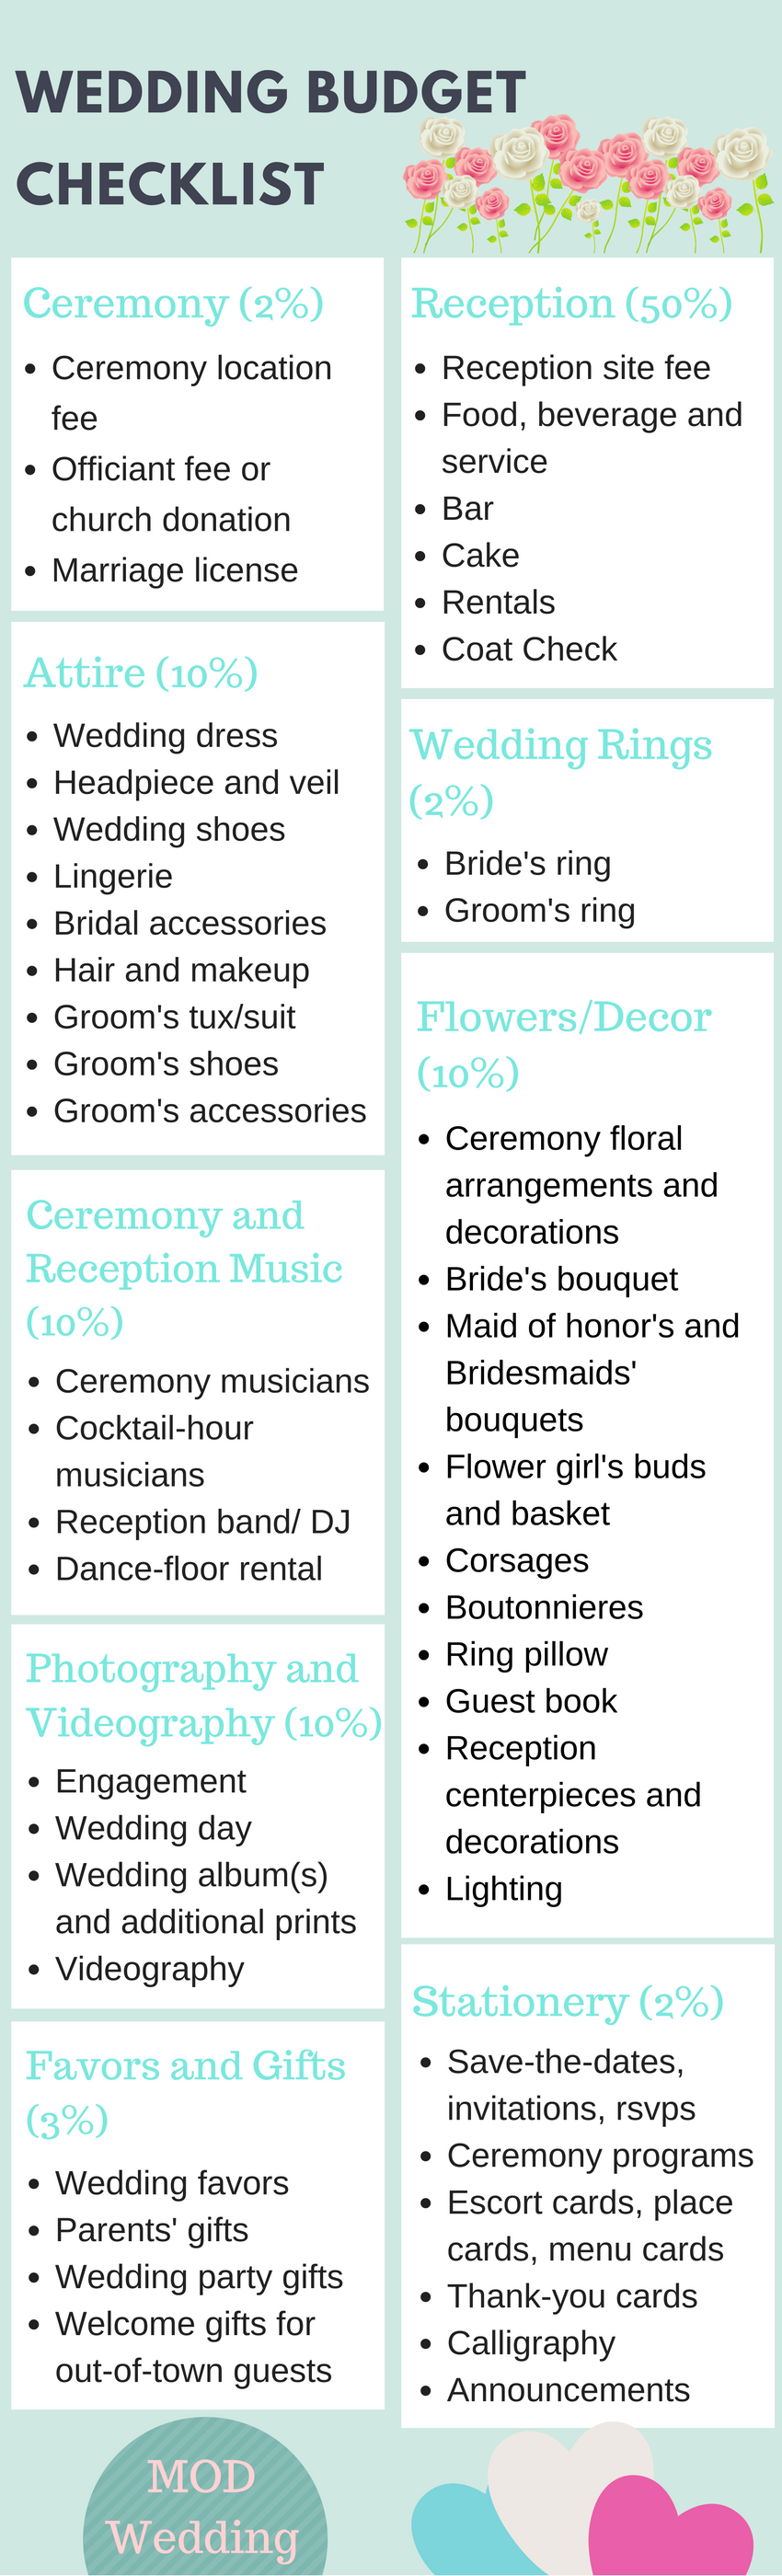 Wedding Budget Checklist | Wedding budget checklist